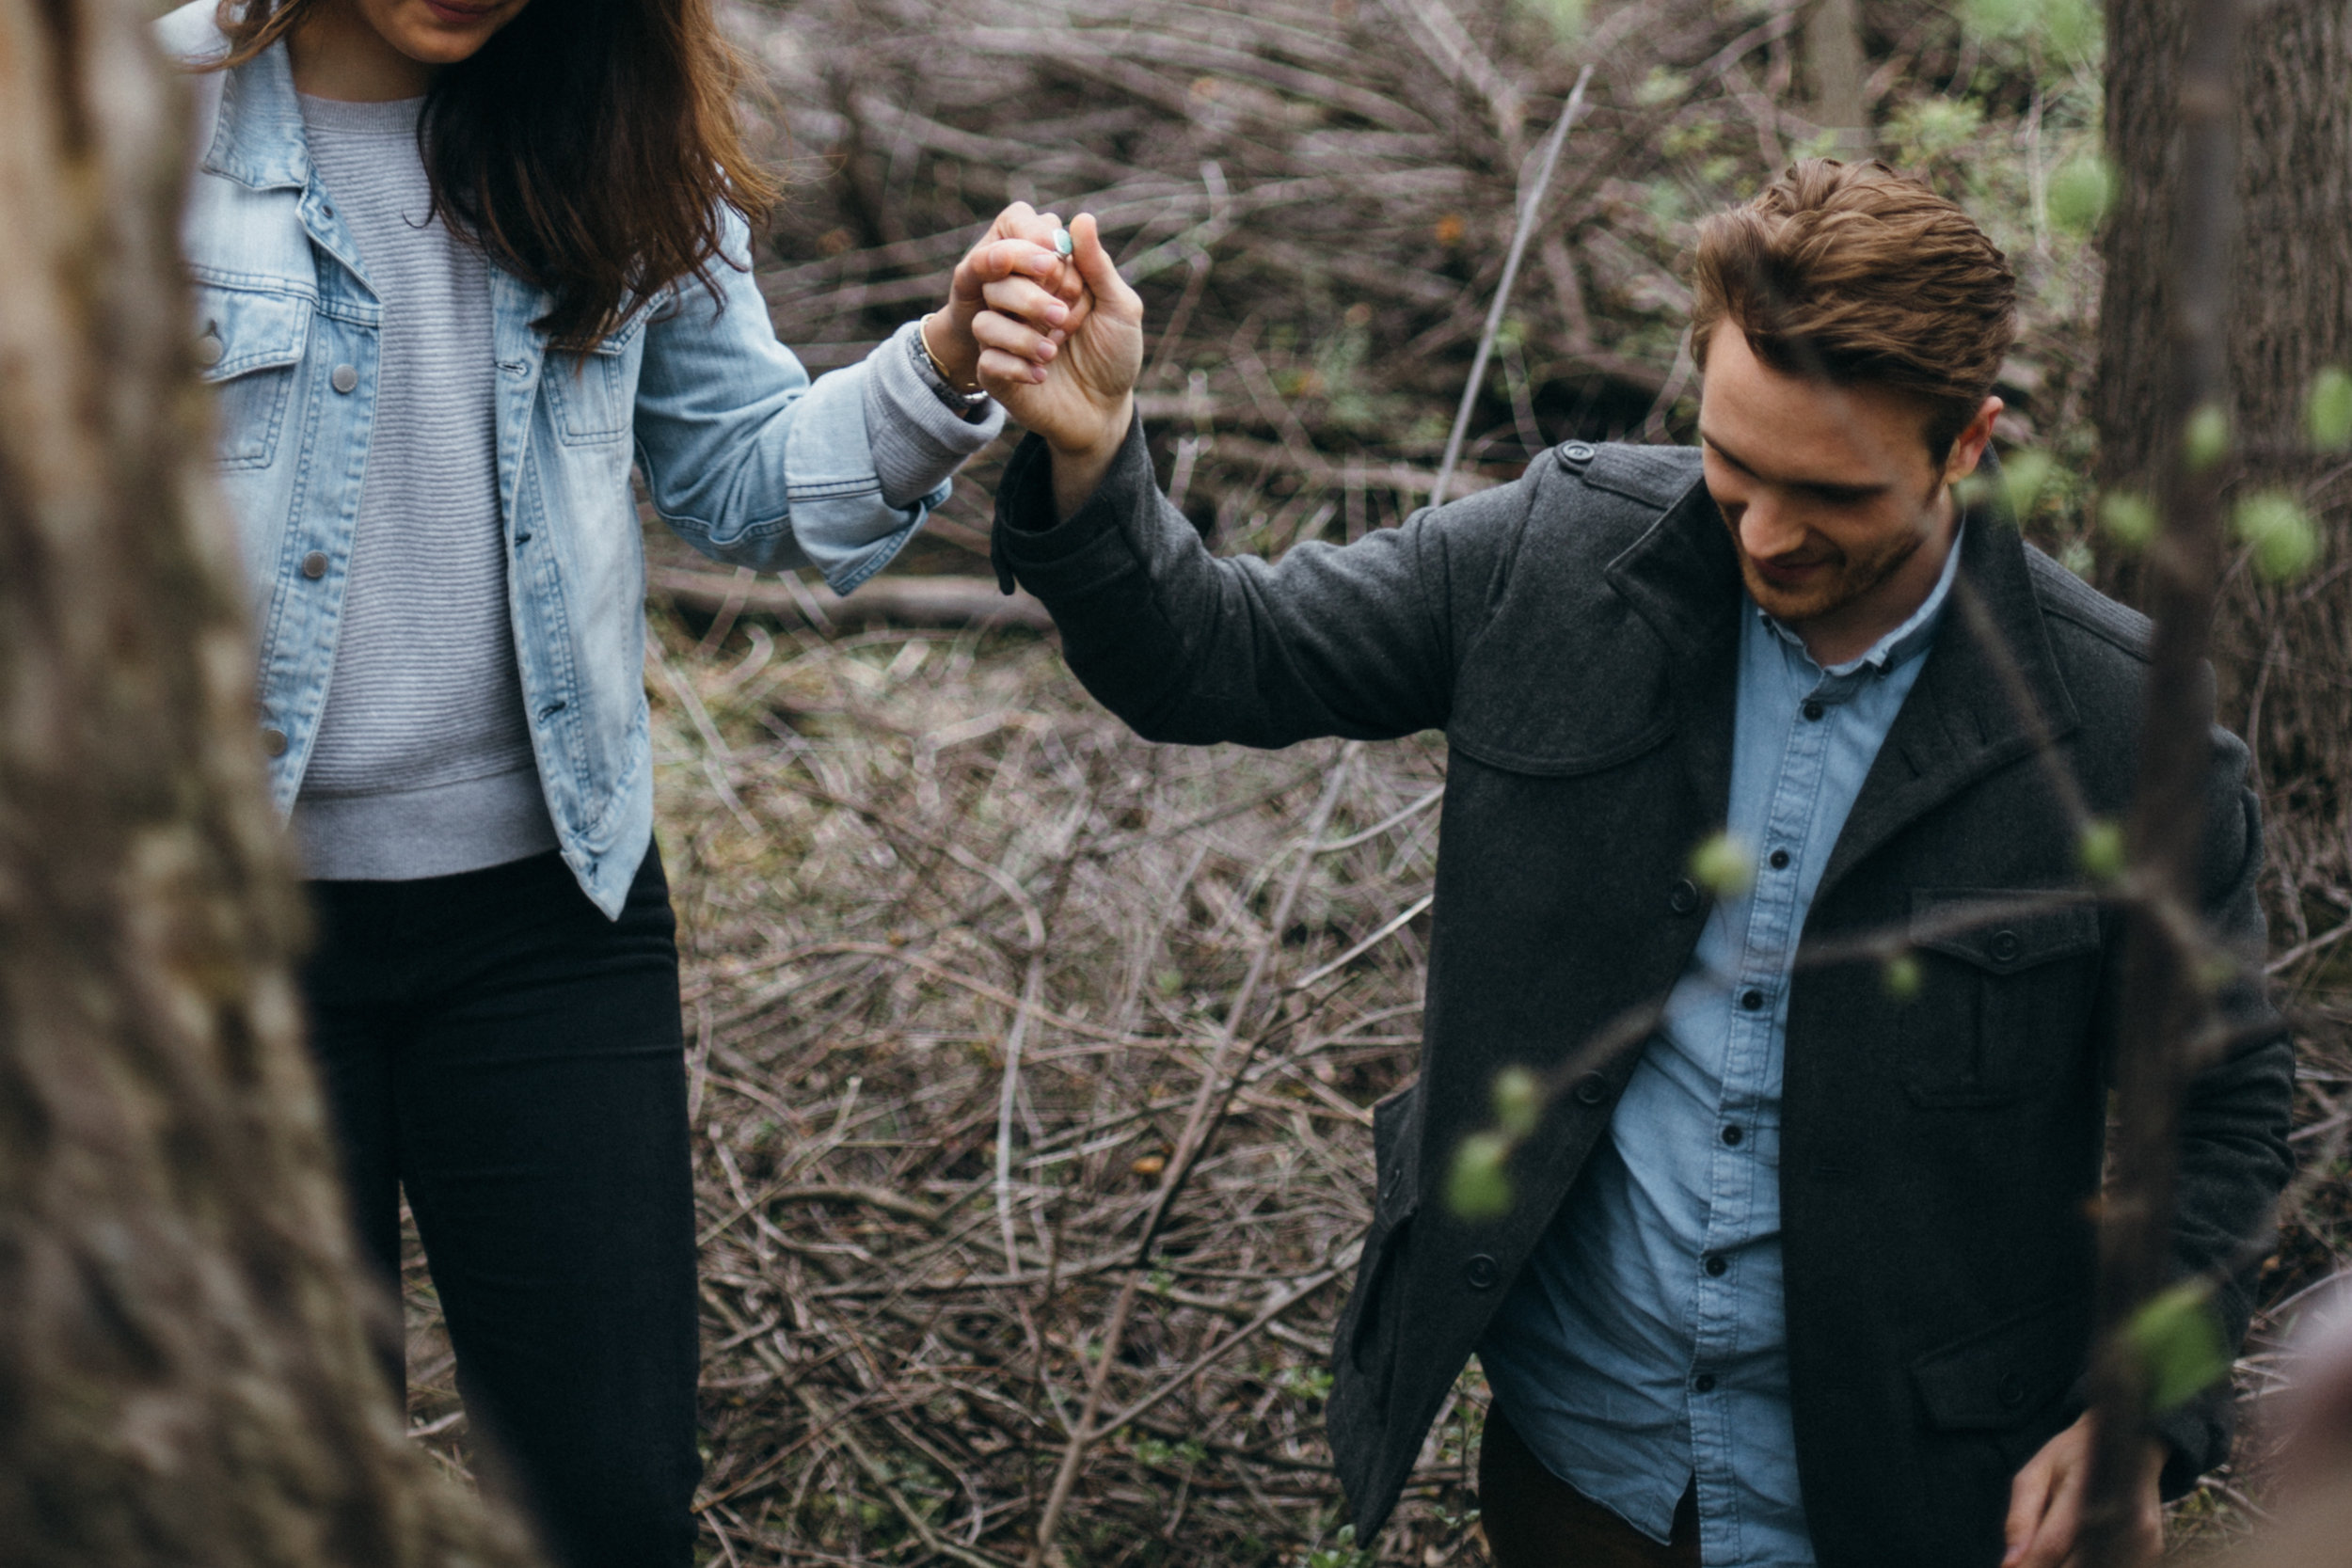 Engagement session in the woods photographed by Minneapolis wedding photographer Britt DeZeeuw